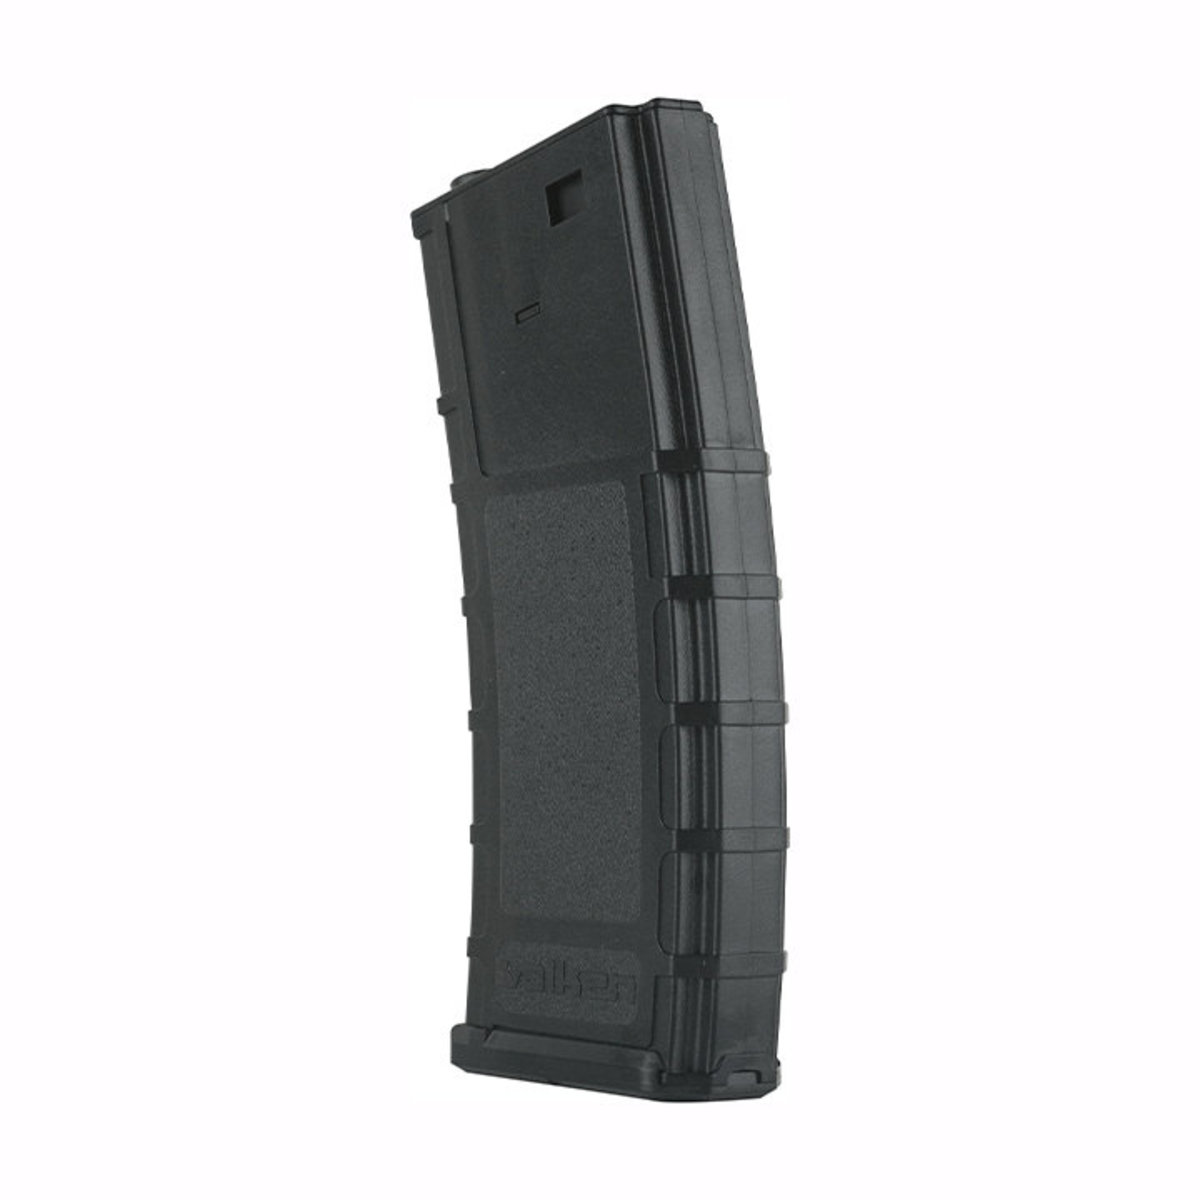 View larger image of Valken 300rd Thermold RMAG Hi-Cap Airsoft Magazines - 5 Pack